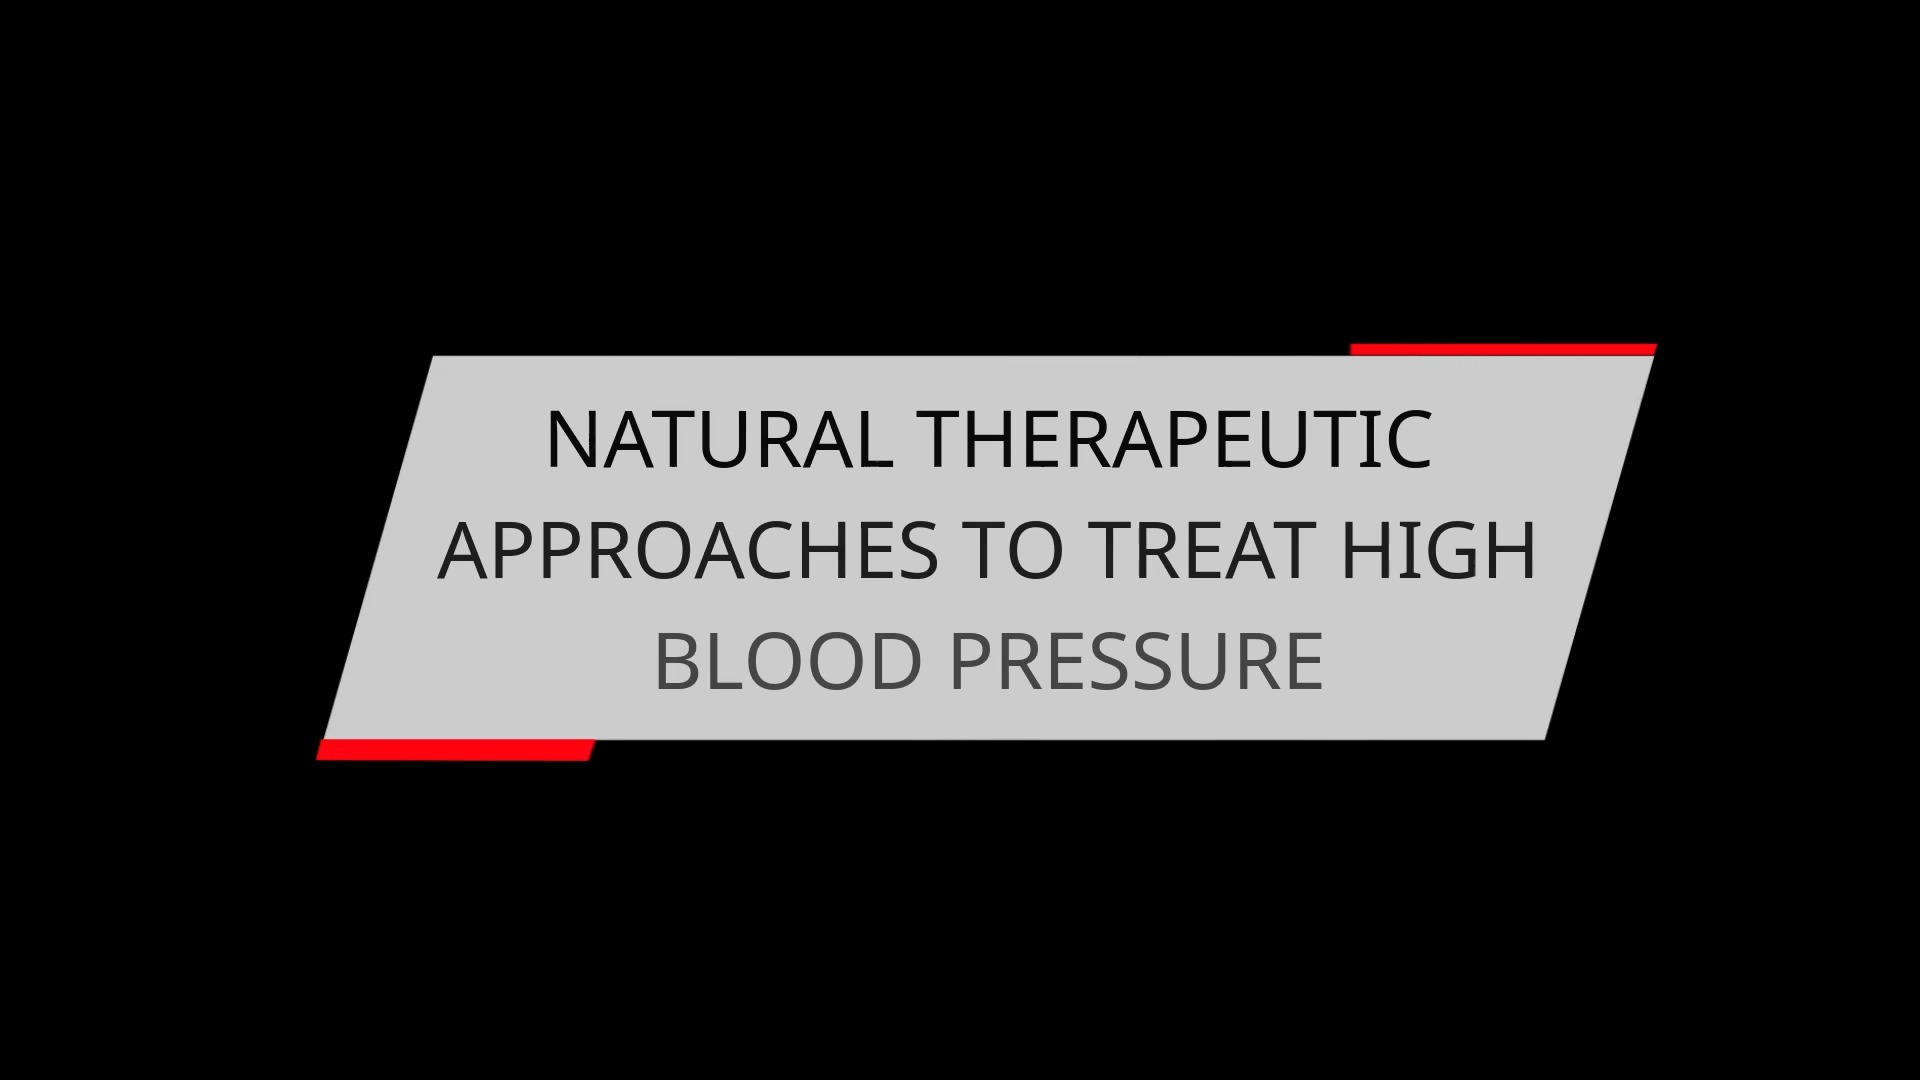 NATURAL THERAPEUTIC APPROACHES TO TREAT HIGH BLOOD PRESSURE